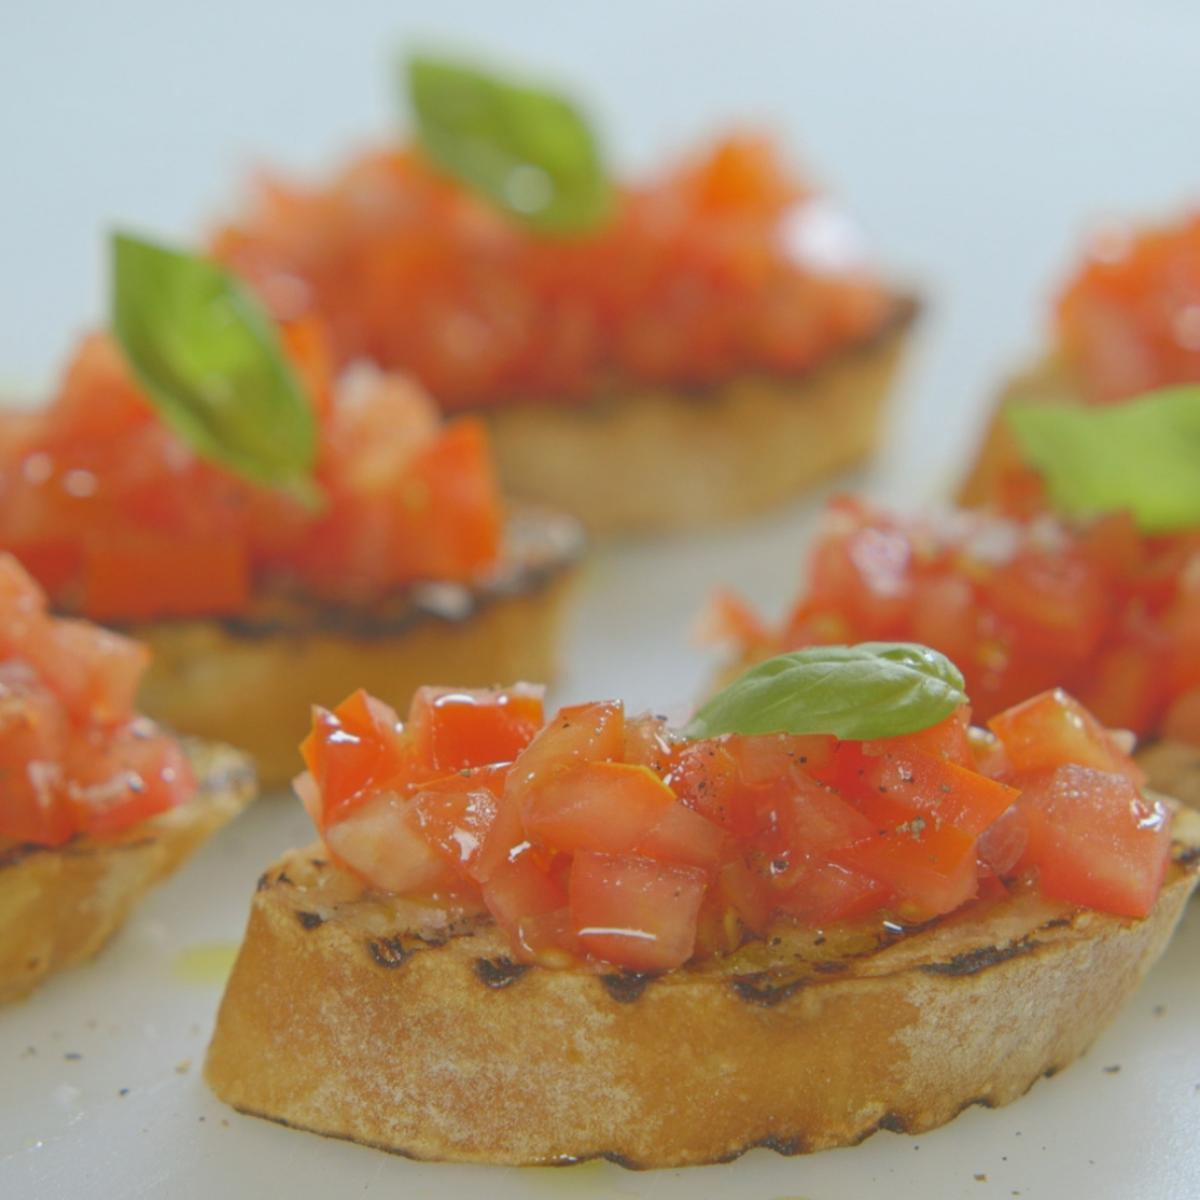 A picture of Delia's Bruschetta with Tomato and Basil recipe